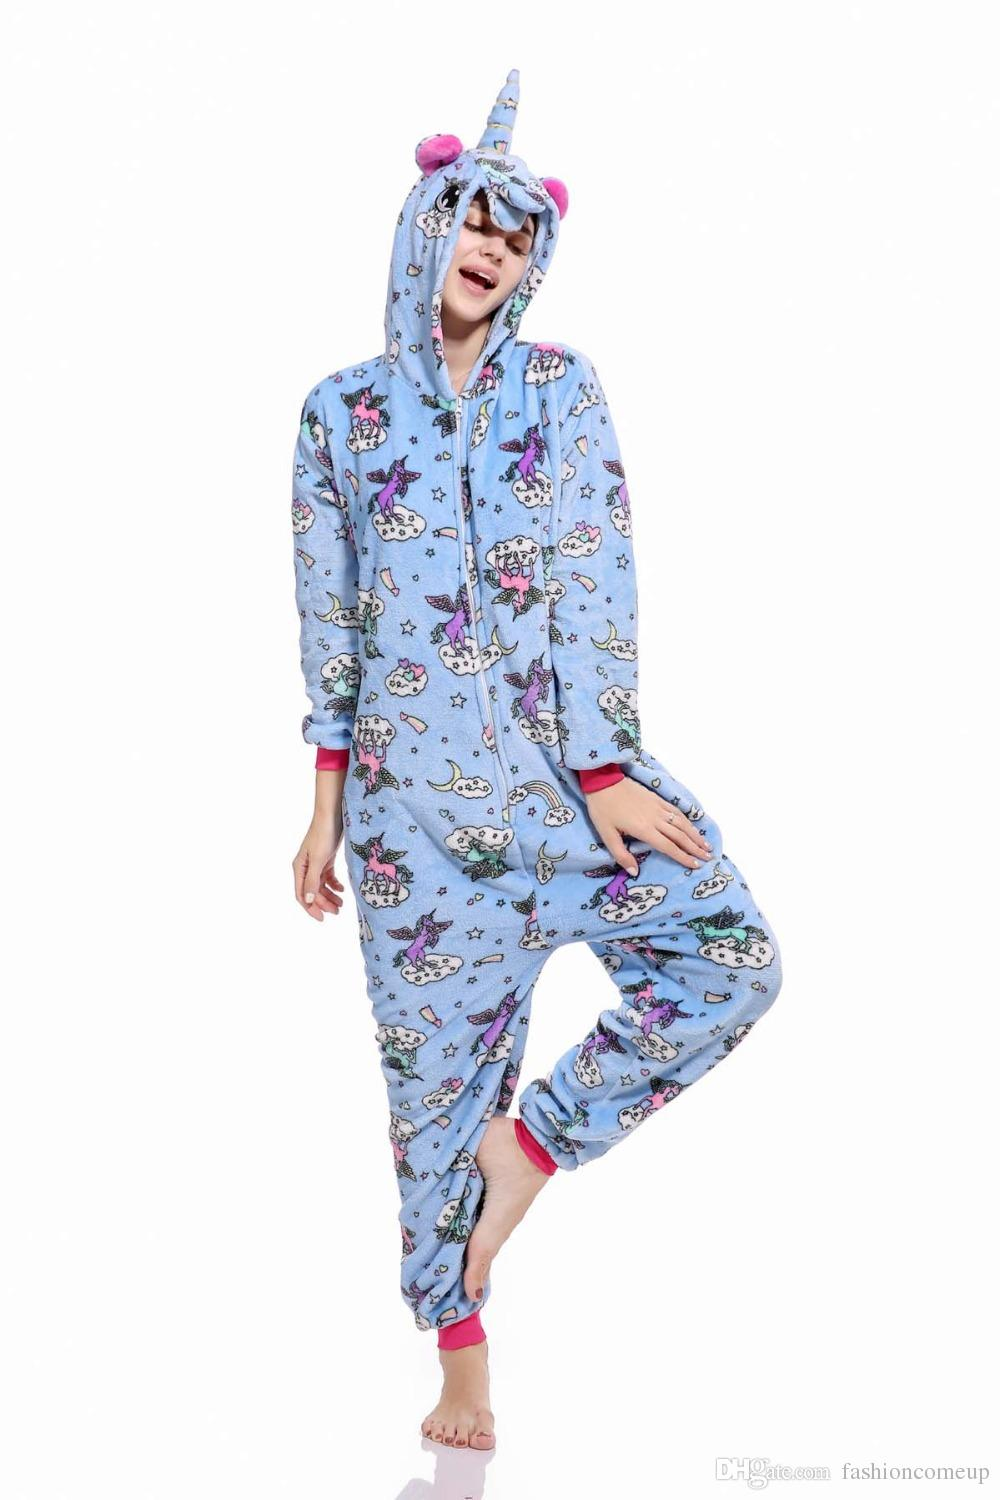 b1e1c00c4f7f Animal Pegasus Kigurumi Unicorn Onesies Adult Unisex Women Men Kids Hooded  Flannel Sleepwear Winter Pajamas SF10 5 Awesome Group Halloween Costumes ...